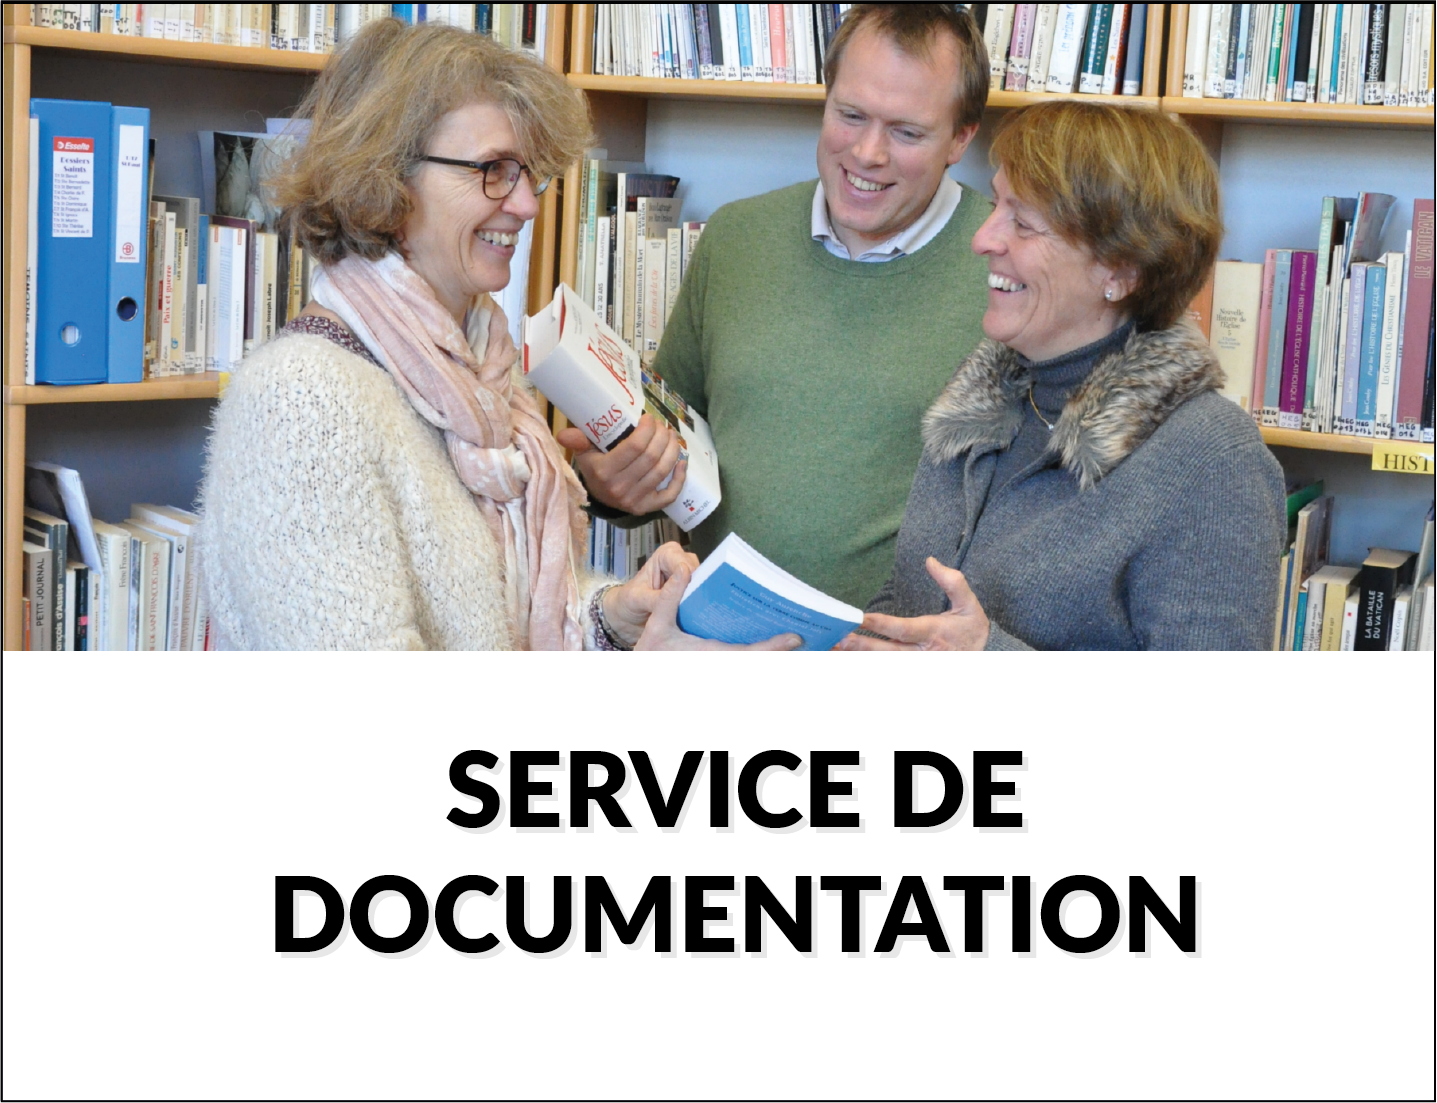 Service de documentation